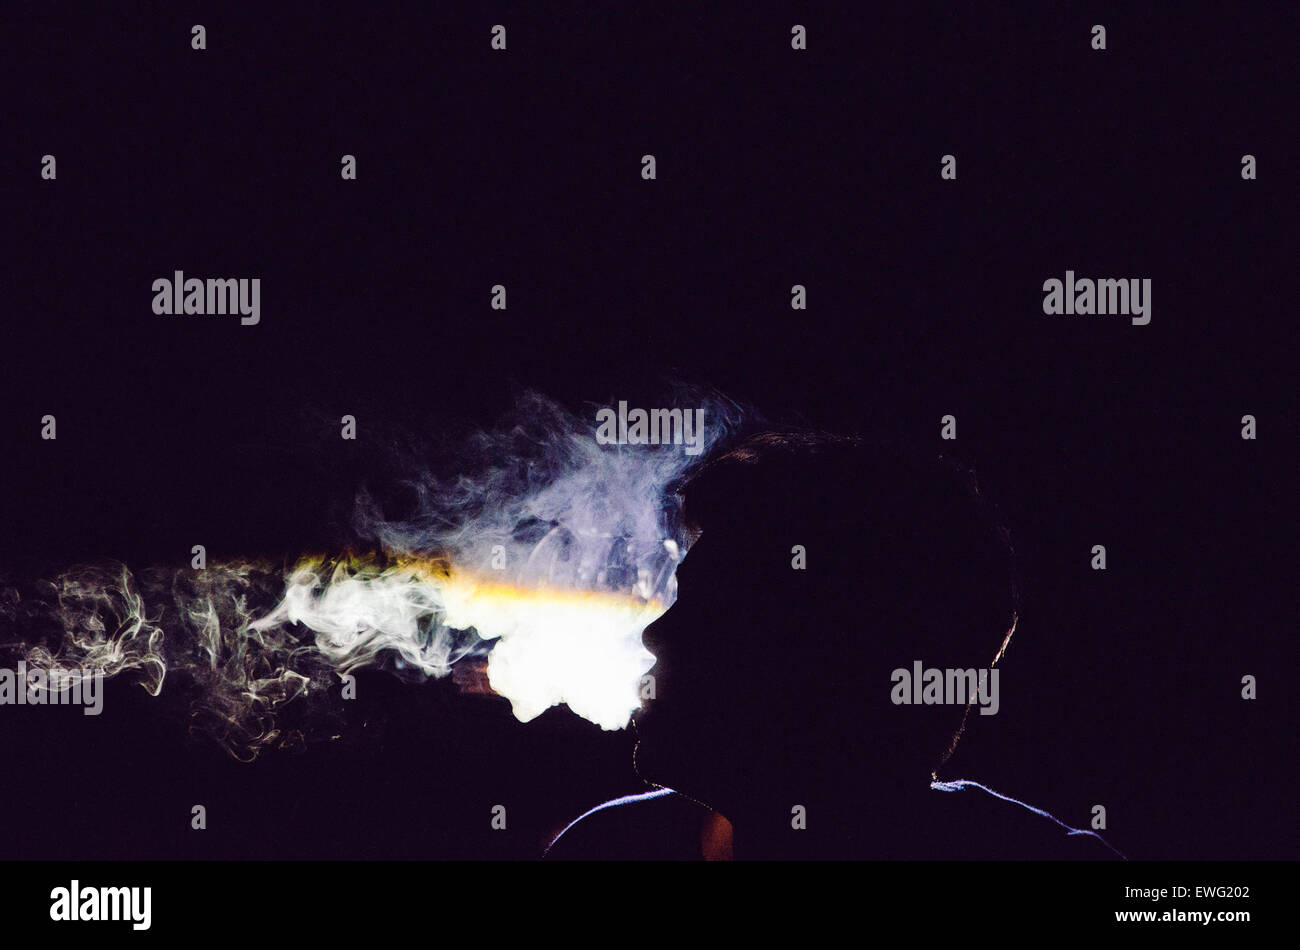 Silhouette of Person Blowing Smoke - Stock Image